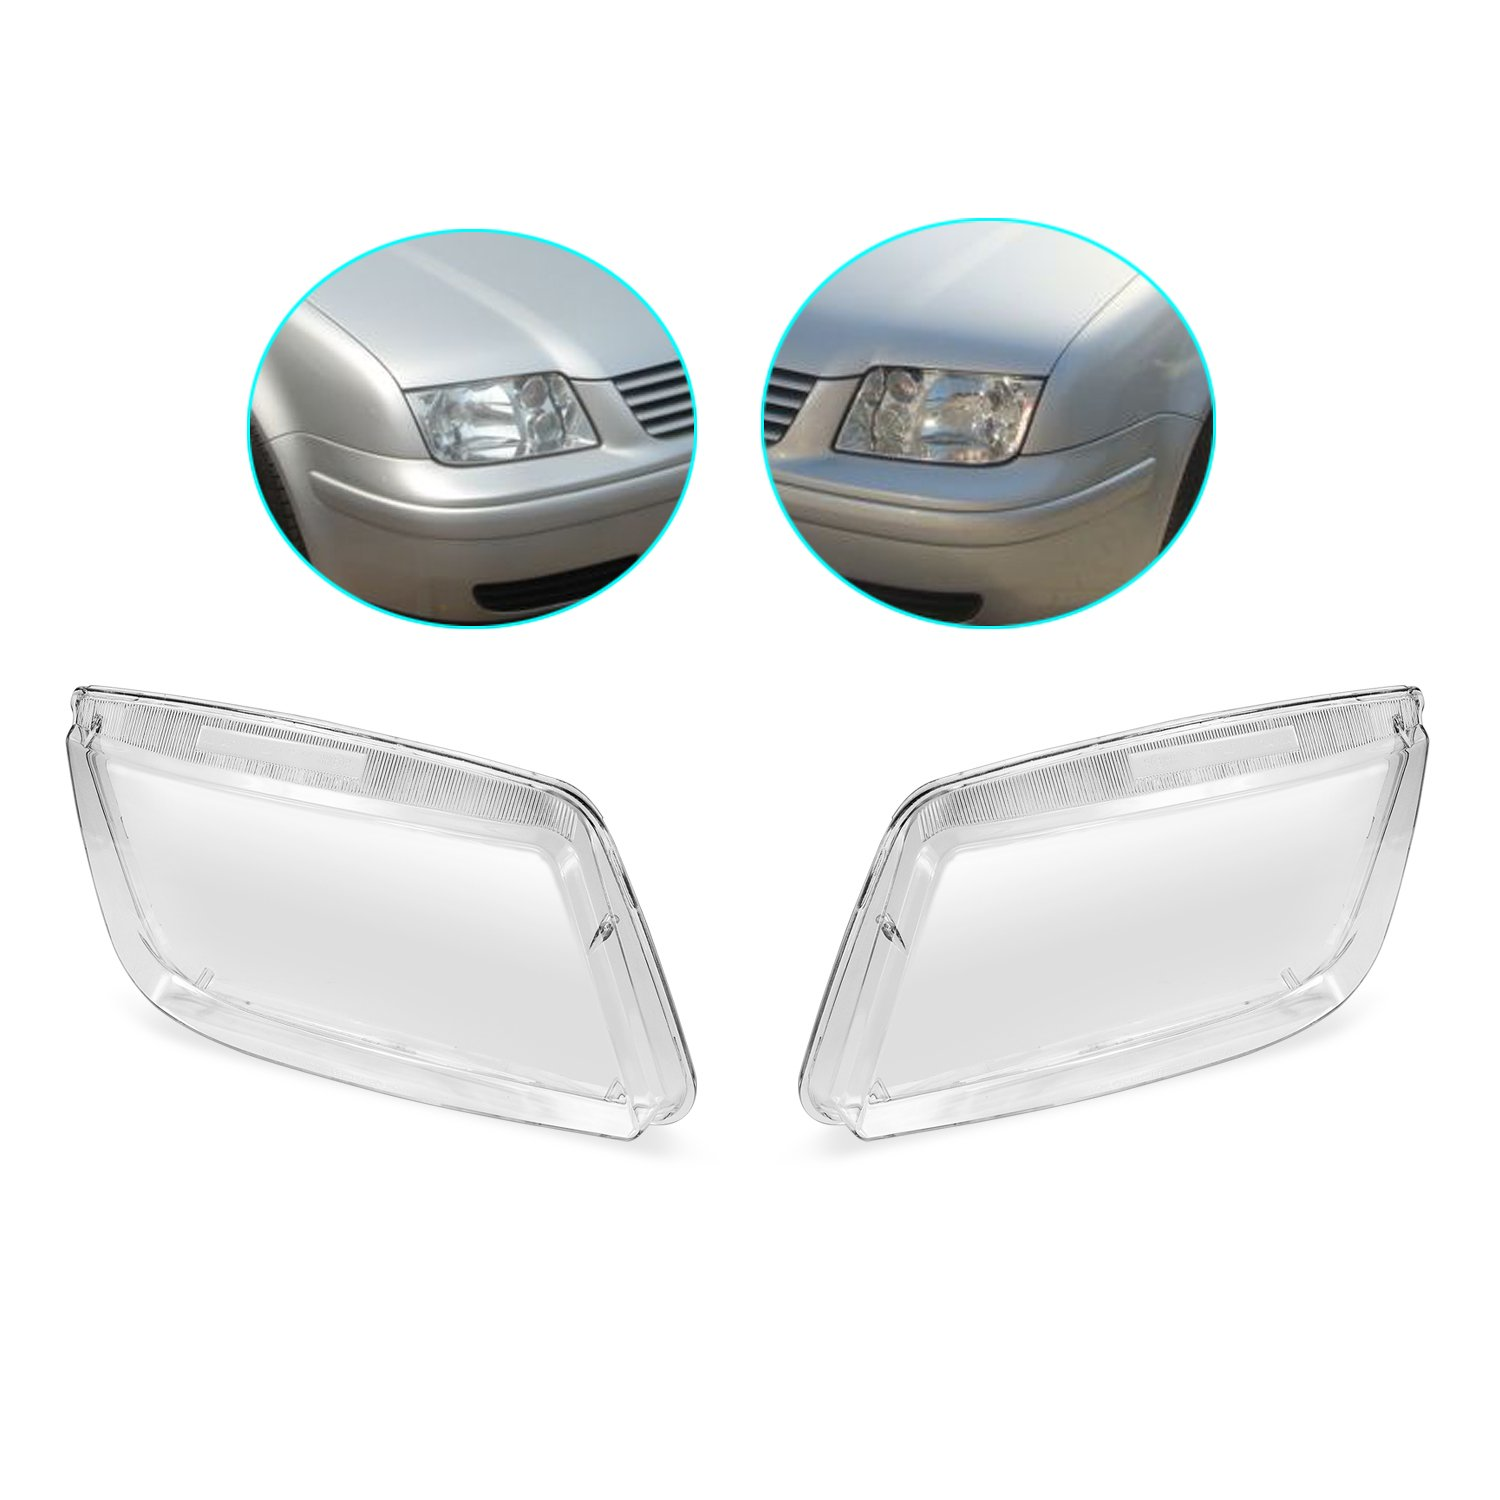 LOOYUAN Set of Headlight Lenses Replacement fit for VW Bora Jetta MK4 Kinglooyuan